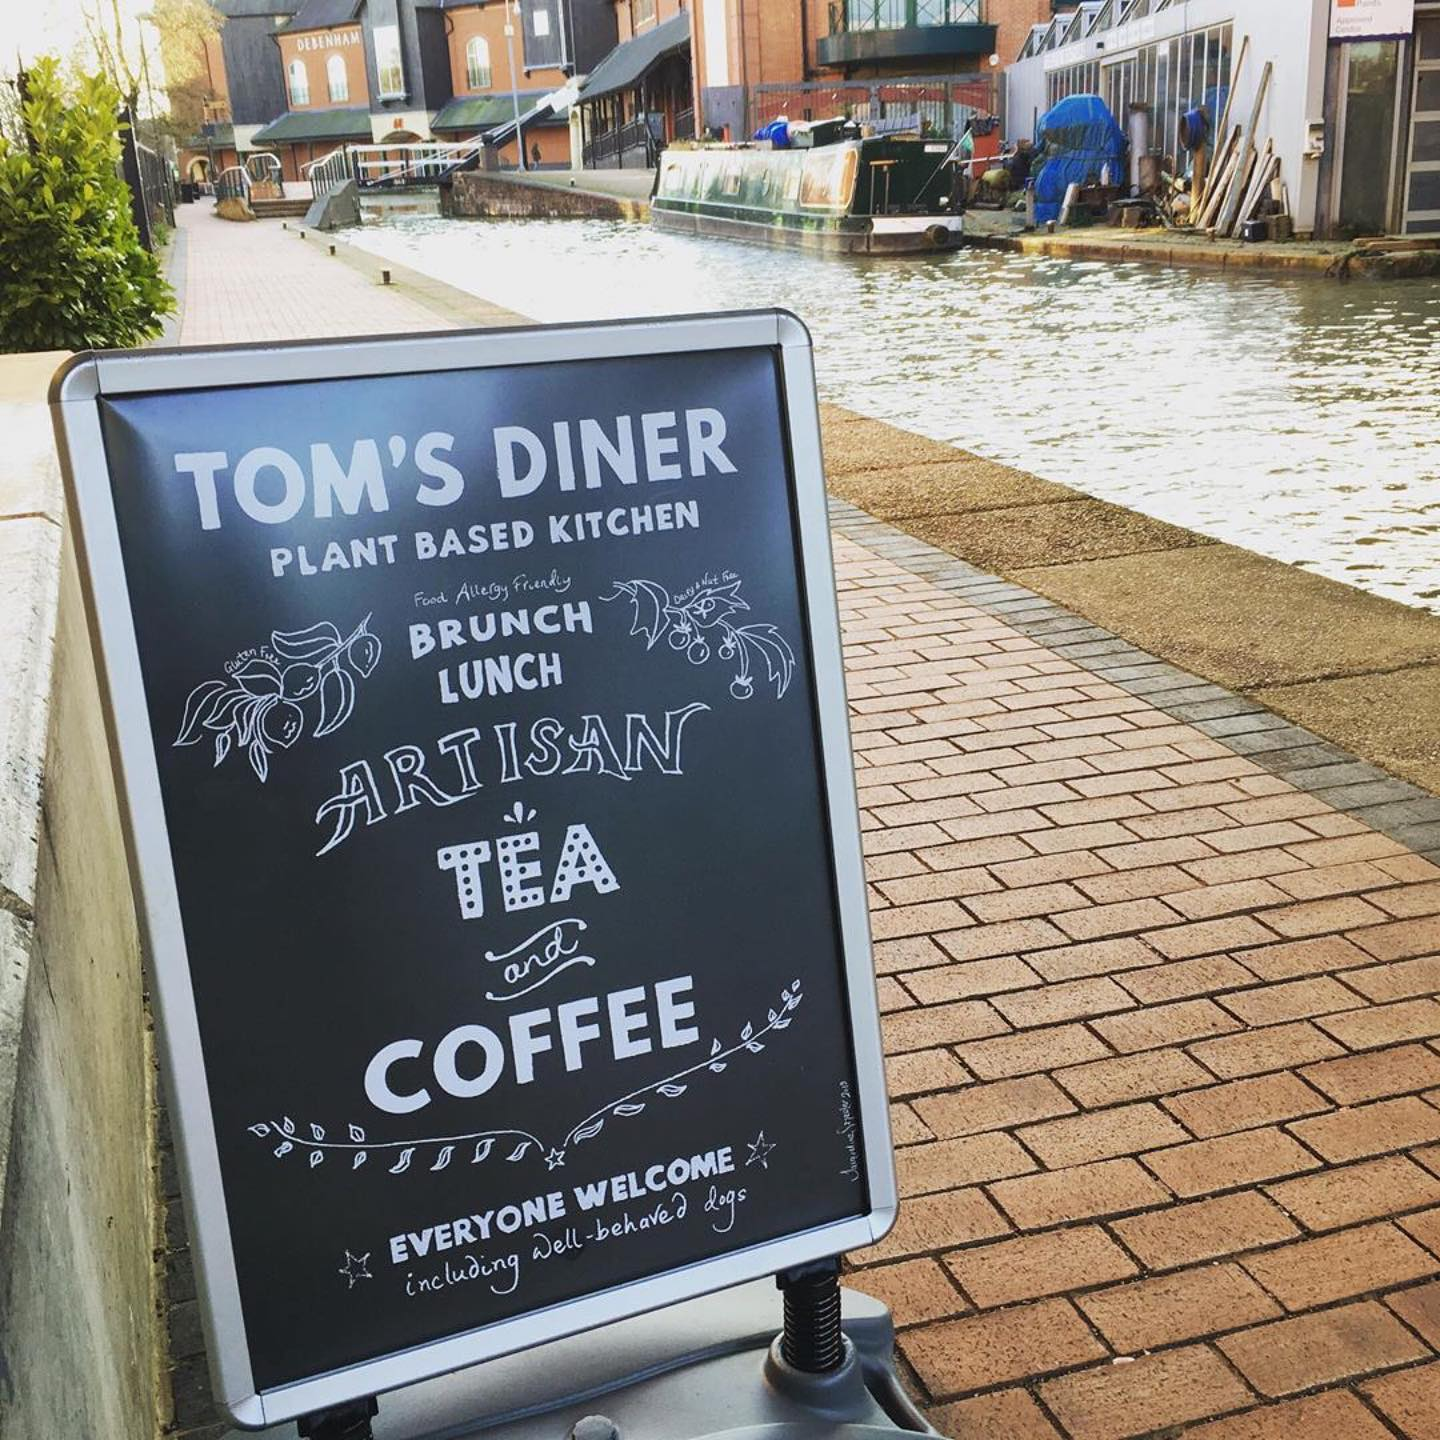 Tom's Diner, Banbury